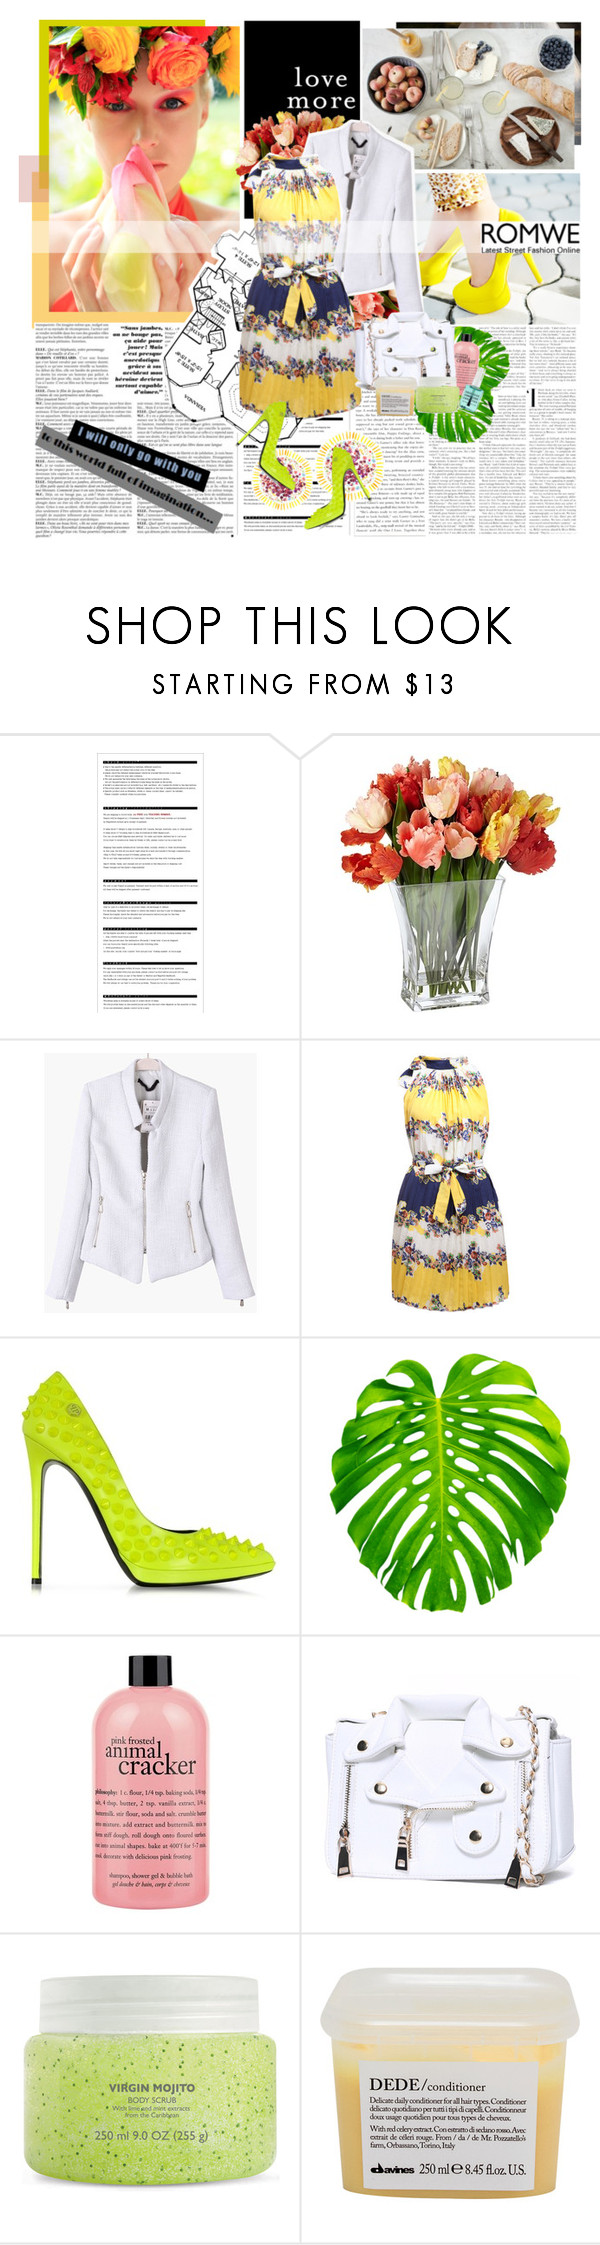 """romwe"" by stelladrmwn ❤ liked on Polyvore featuring Pixie, Chanel, Arche, Philipp Plein, philosophy, Davines and Obsessive Compulsive Cosmetics"